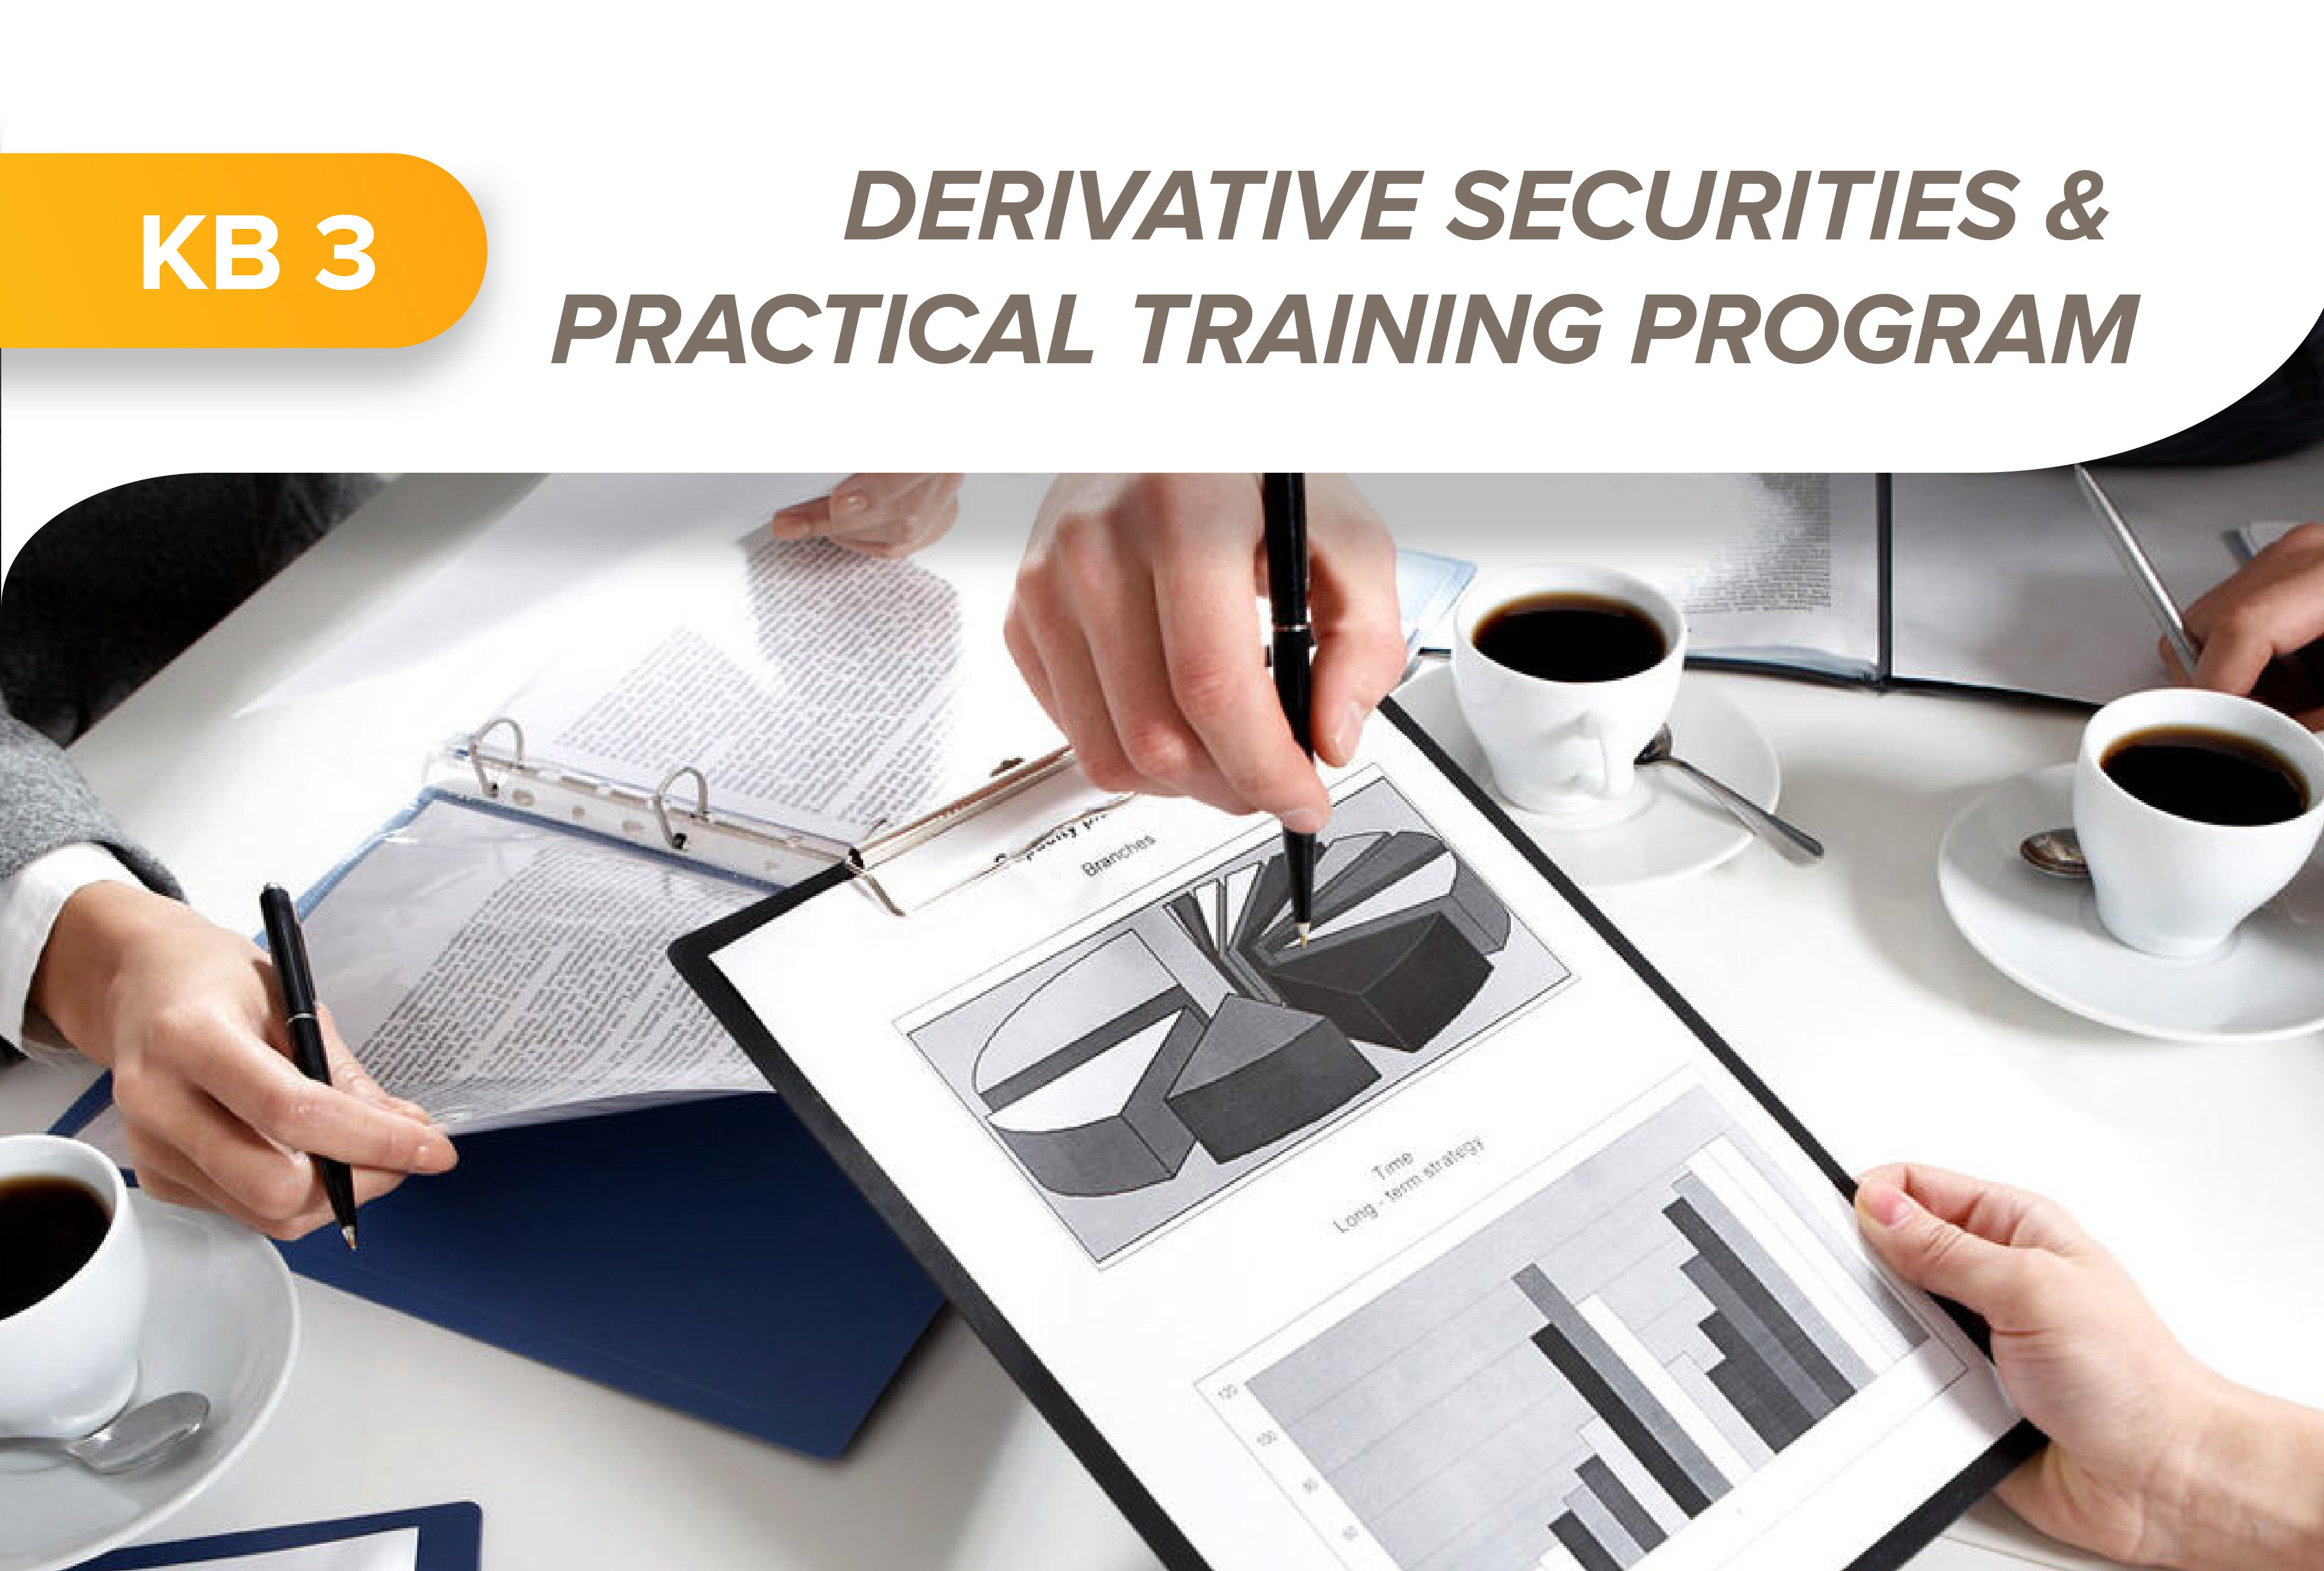 Derivative securities and practical programs